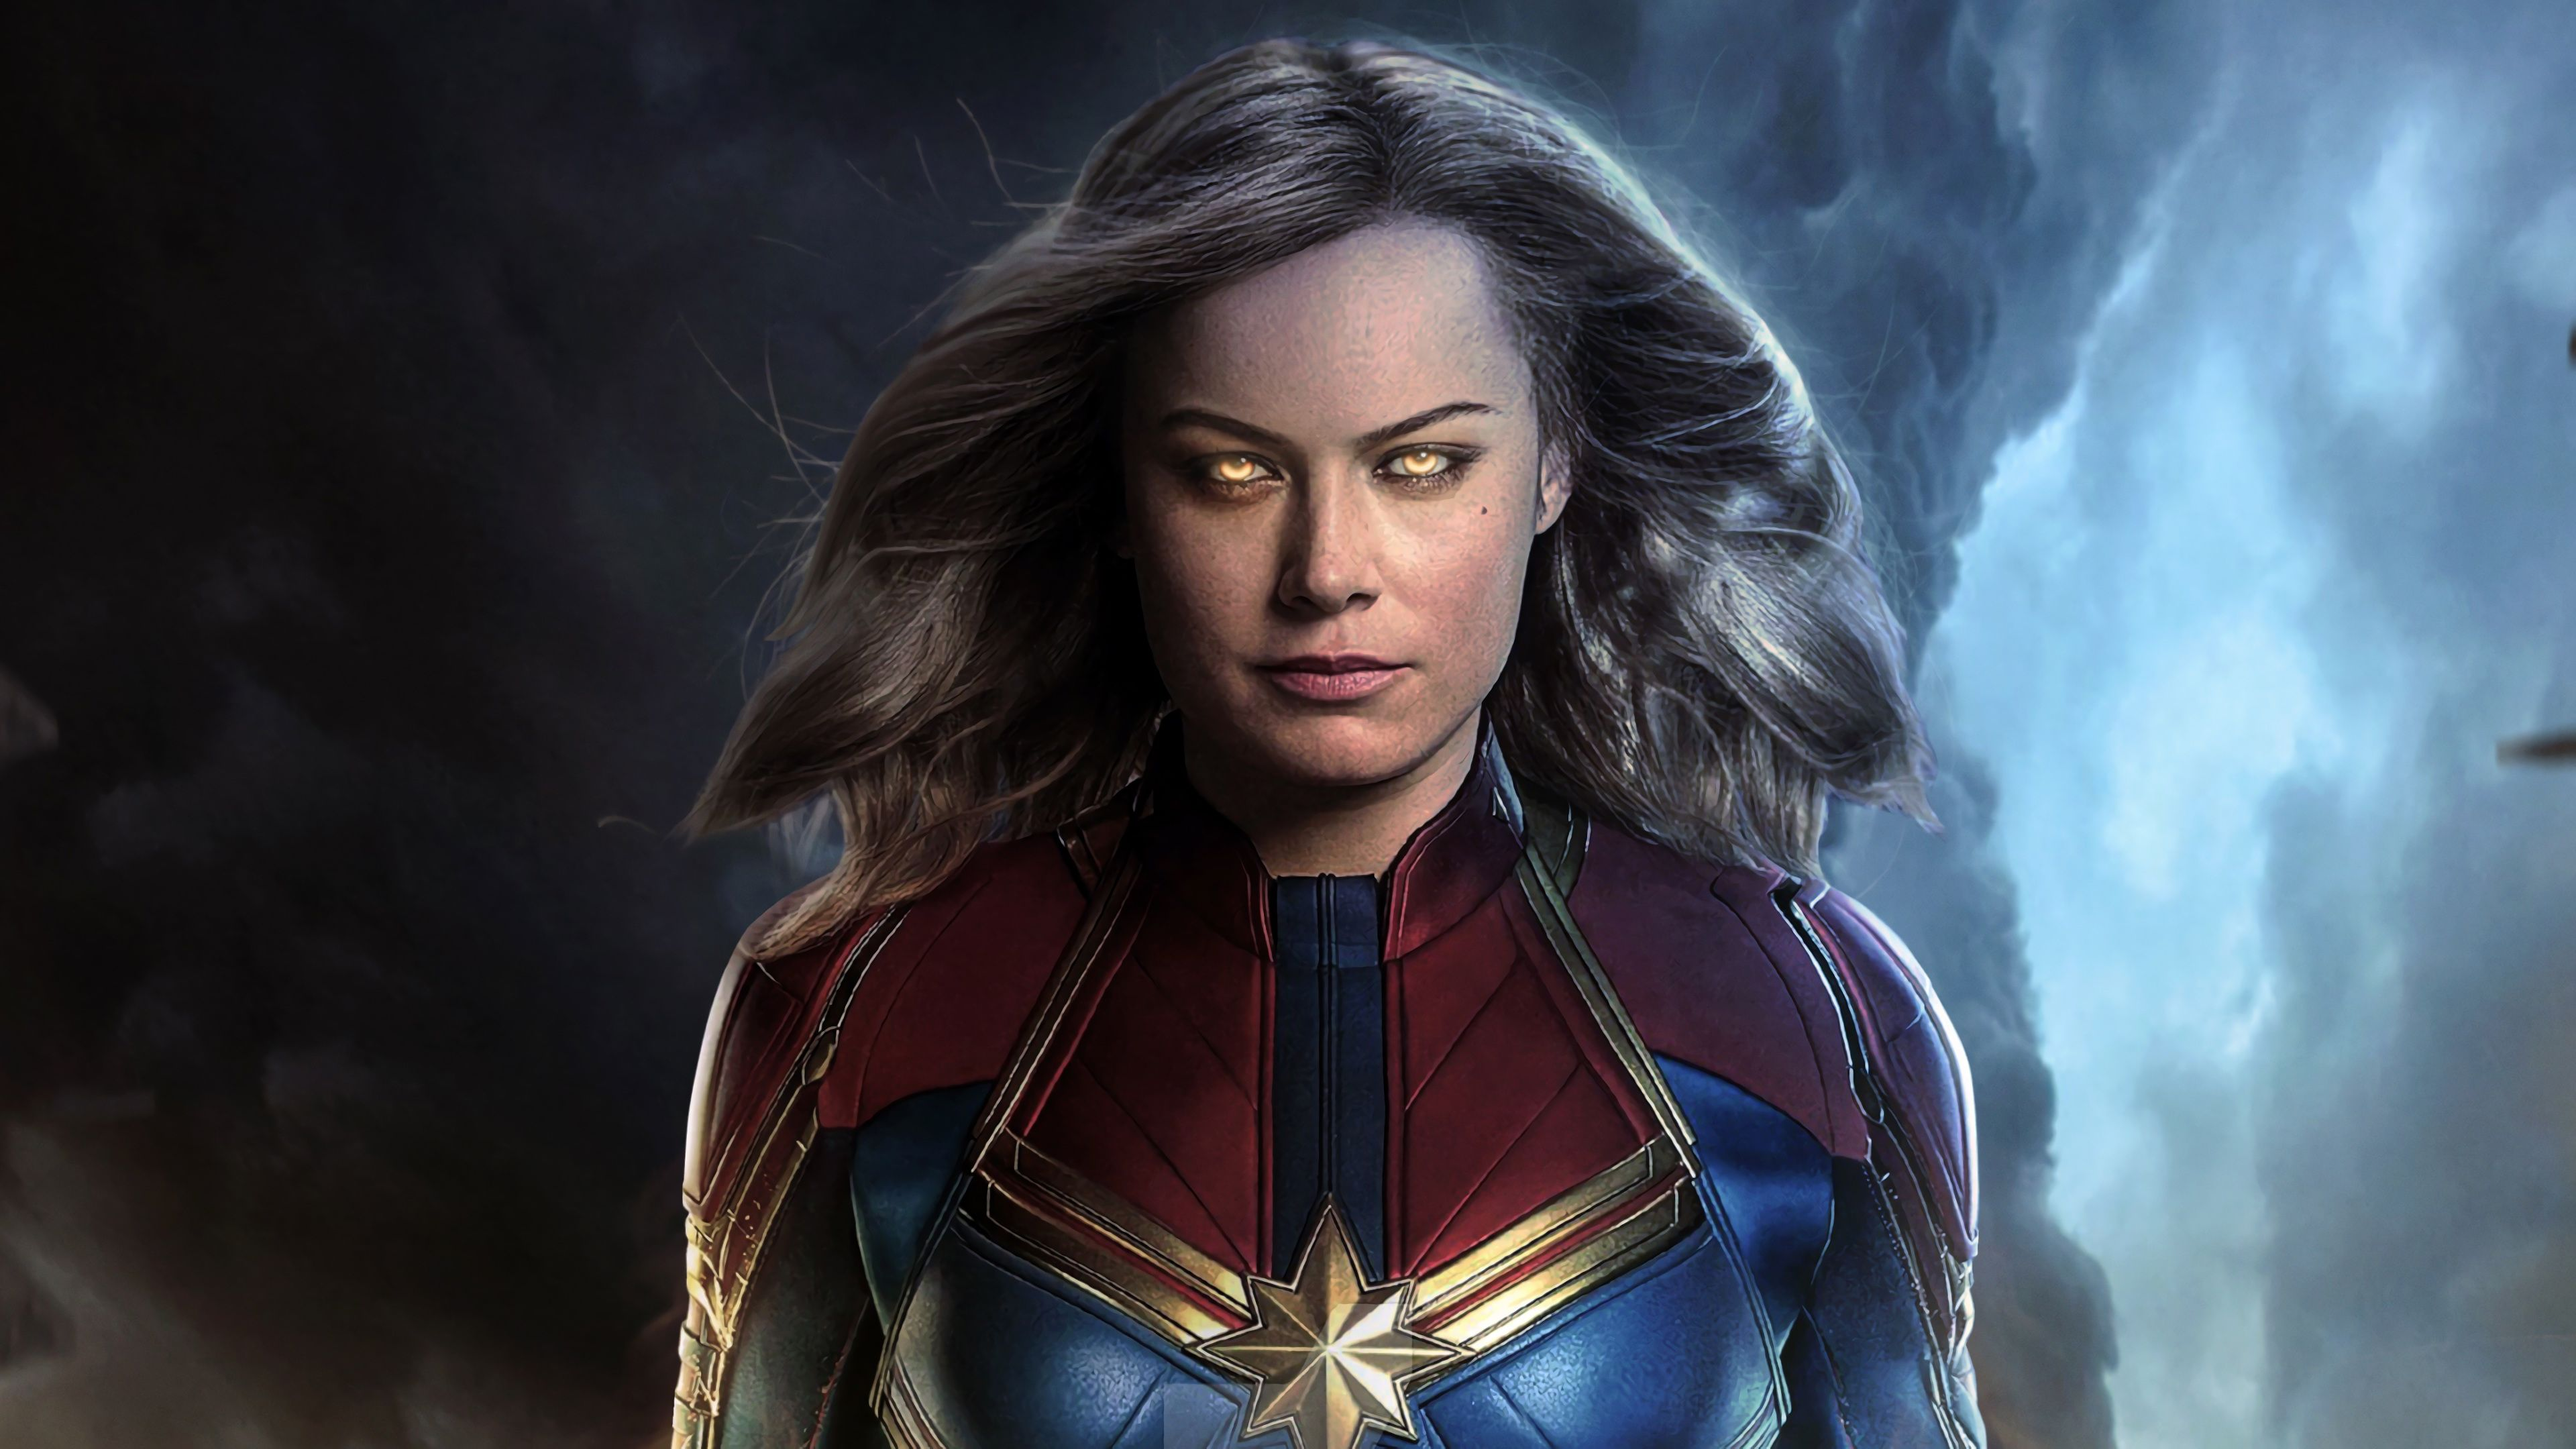 3840x2160 Captain Marvel Movie 2019 Brie Larson as Carol Danvers 4K ...